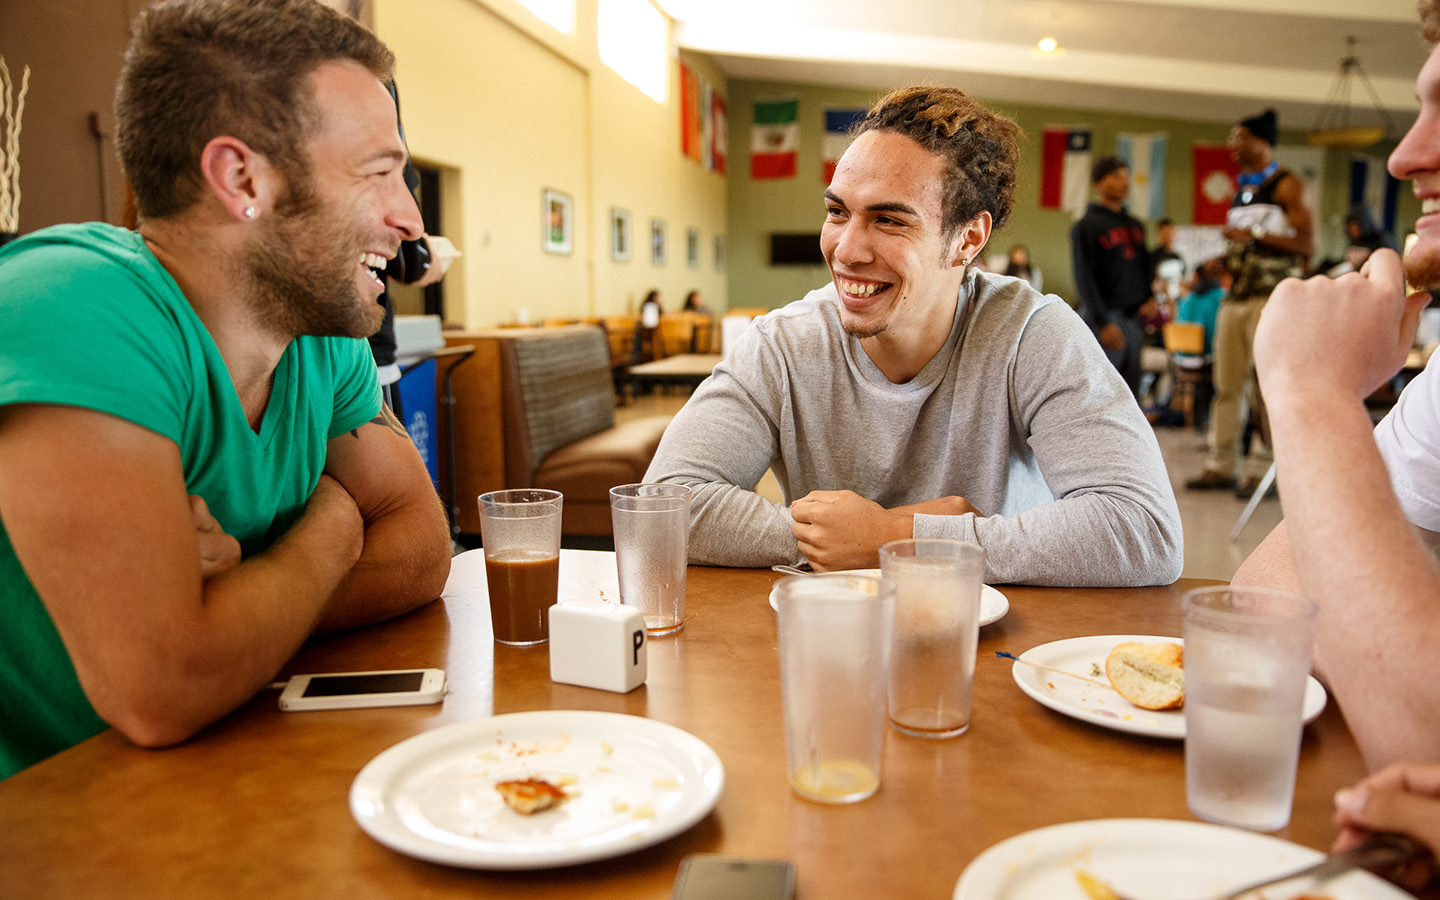 Two Holy Name University students laughing and enjoying lunch